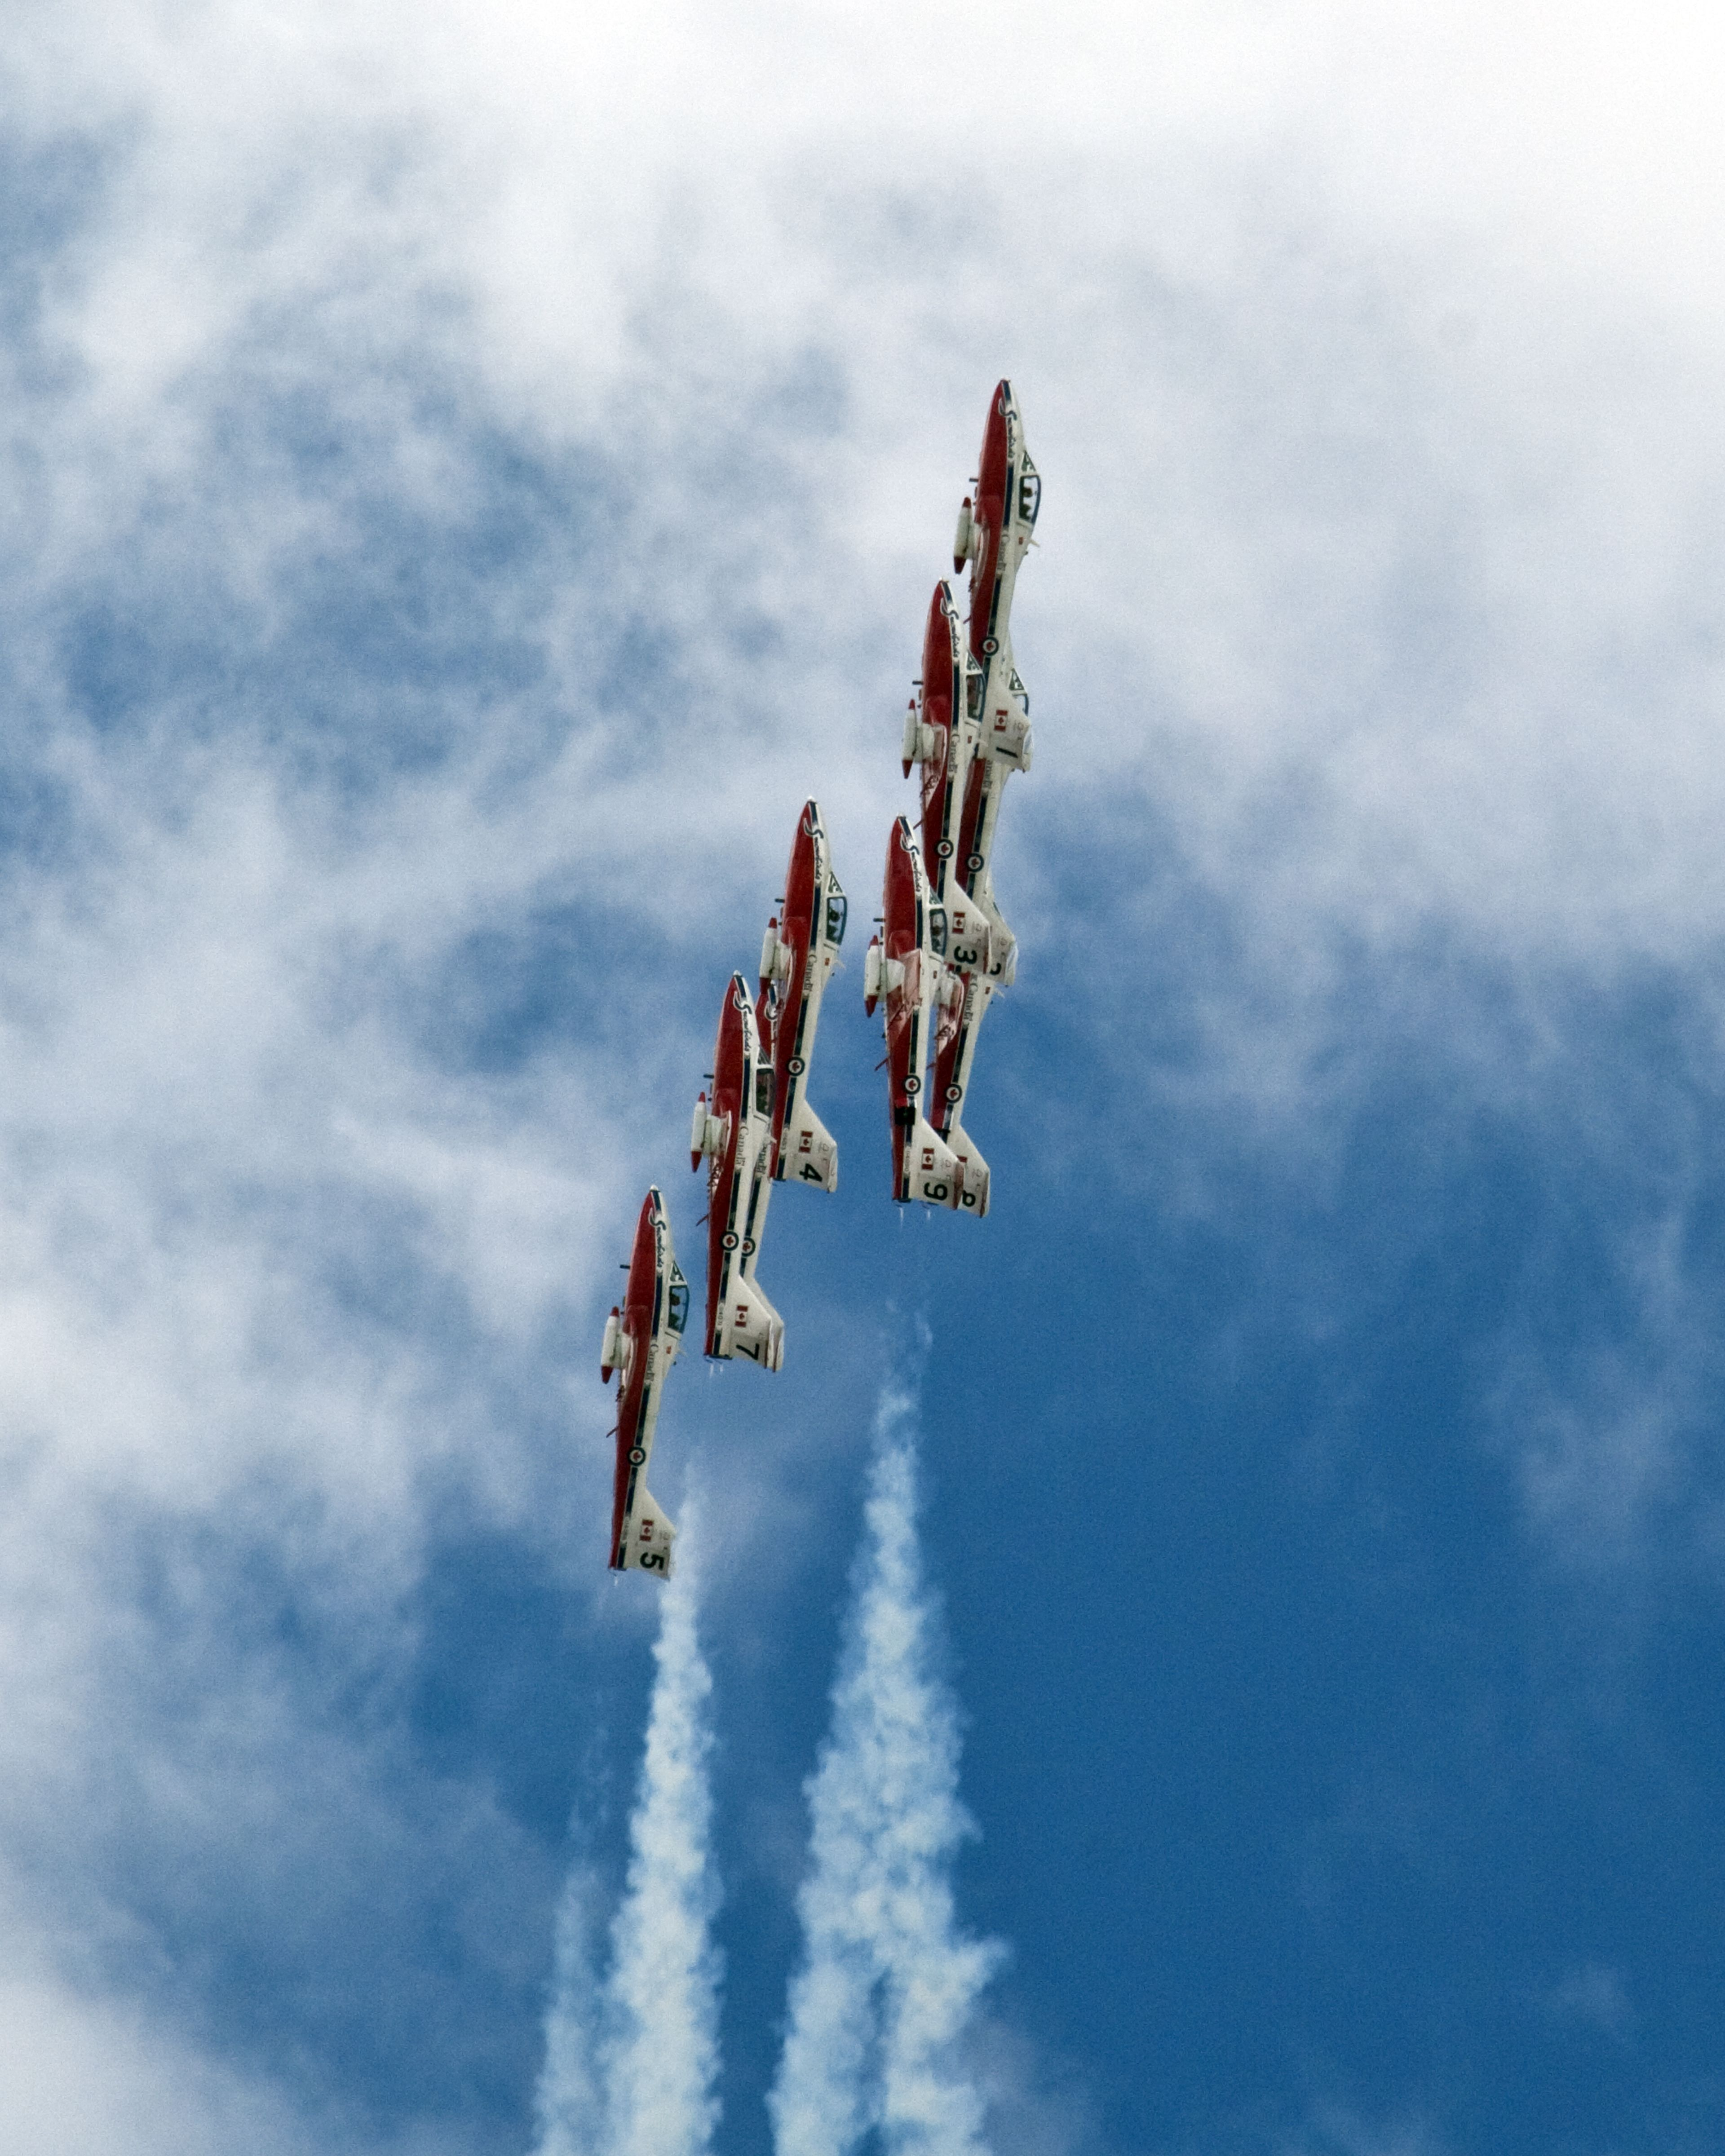 Canadian Snowbirds, eh. Canadian military, Canadian